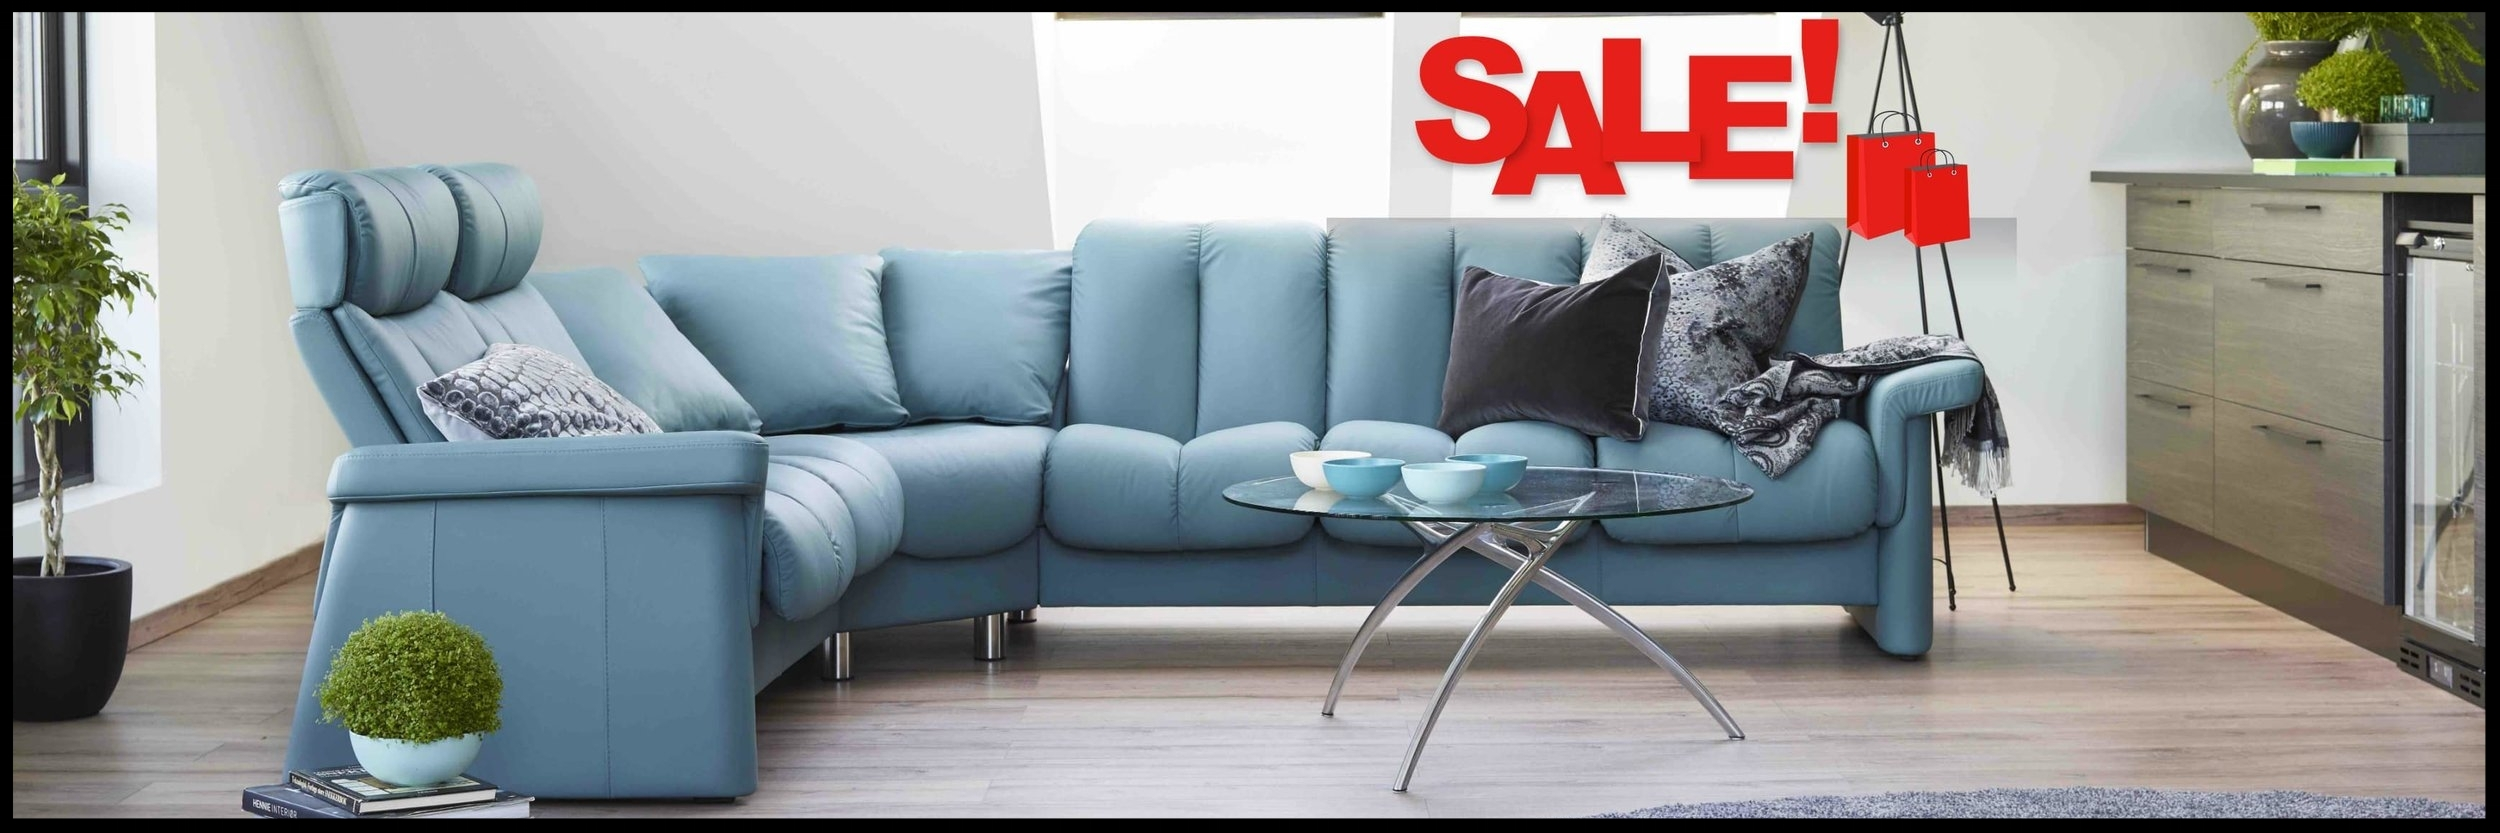 Stressless Sectionals, Sofas, Recliners Clearance